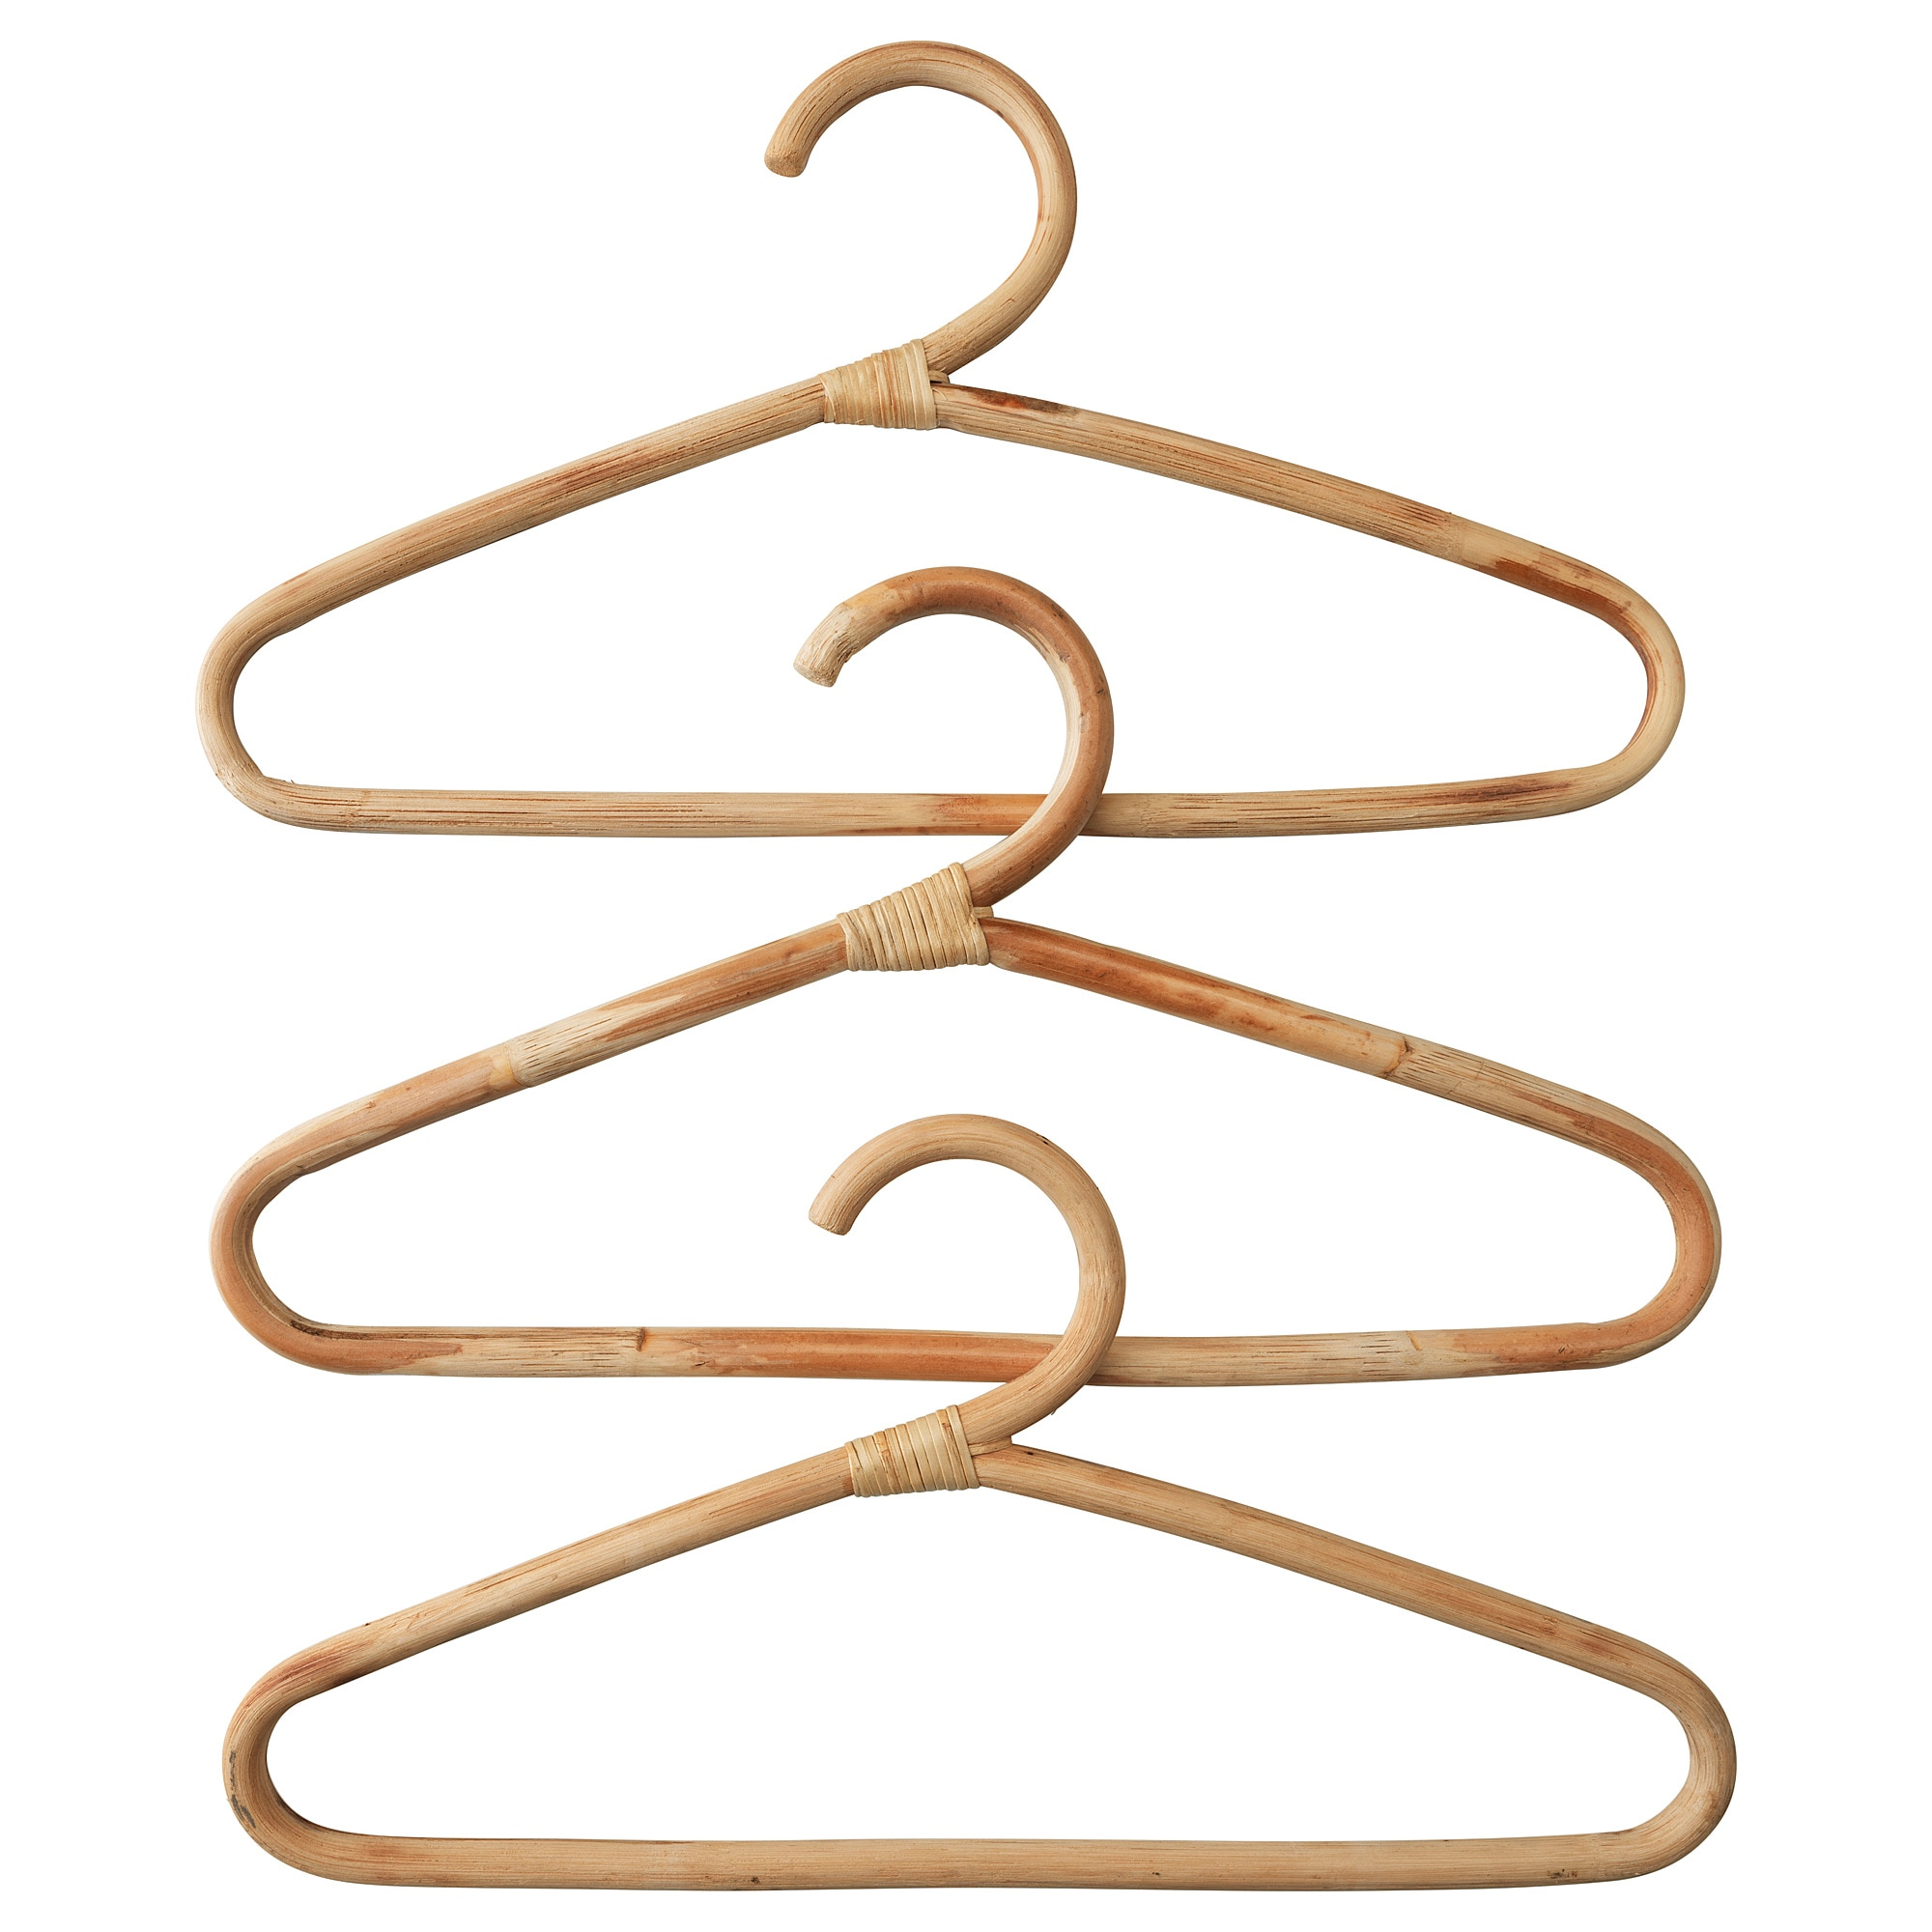 coat apartment moun hangers furniture simply different ron mounted home living for wall shape picture some design hook with popular mahogany decorative and of decor materials wood red decoration room amazing hooks